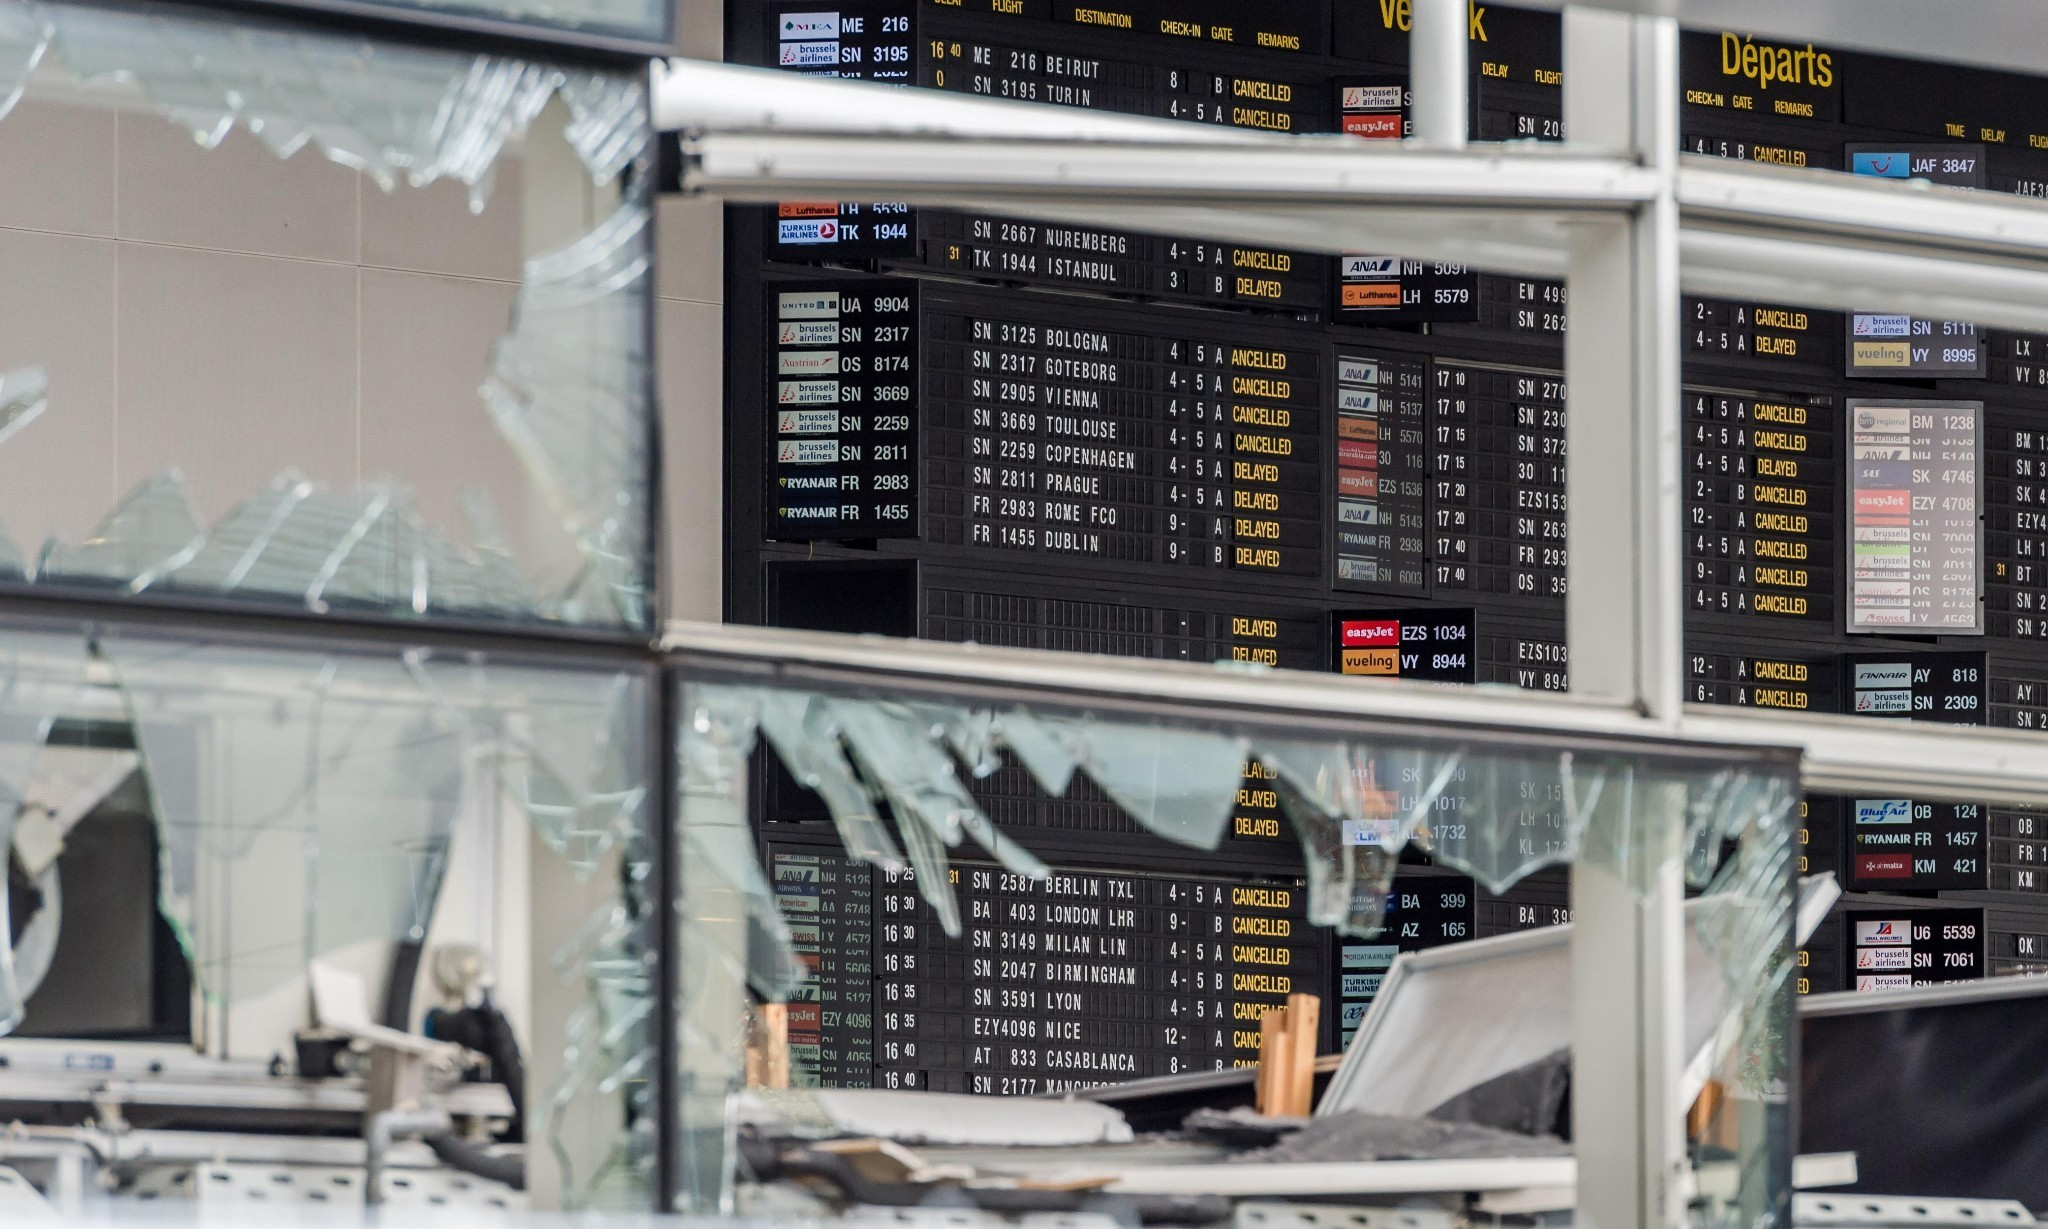 Brussels airport set to reopen with strict new security measures